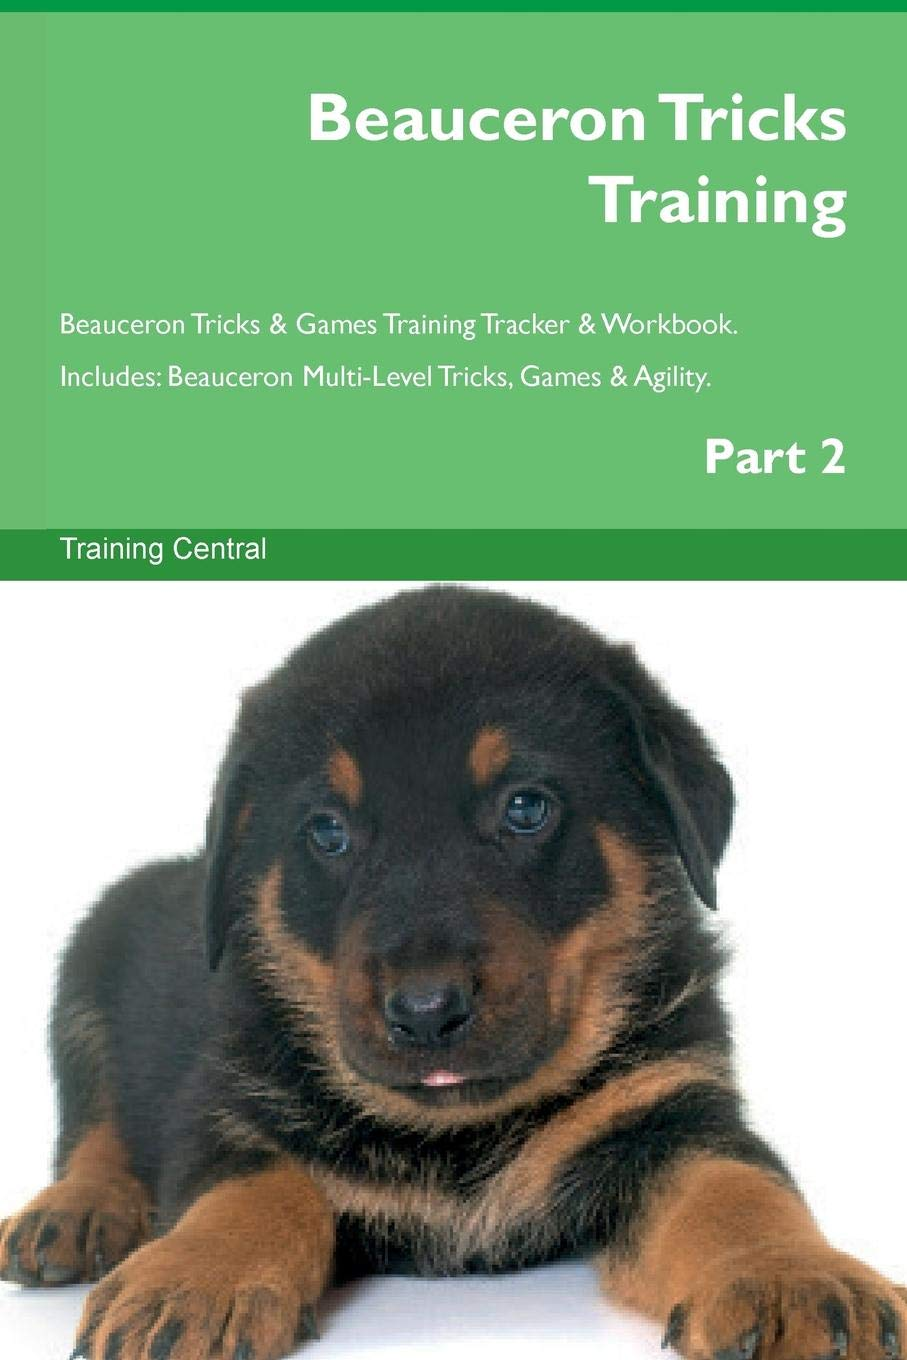 Beauceron Tricks Training Beauceron Tricks & Games Training Tracker & Workbook.  Includes: Beauceron Multi-Level Tricks, Games & Agility. Part 2